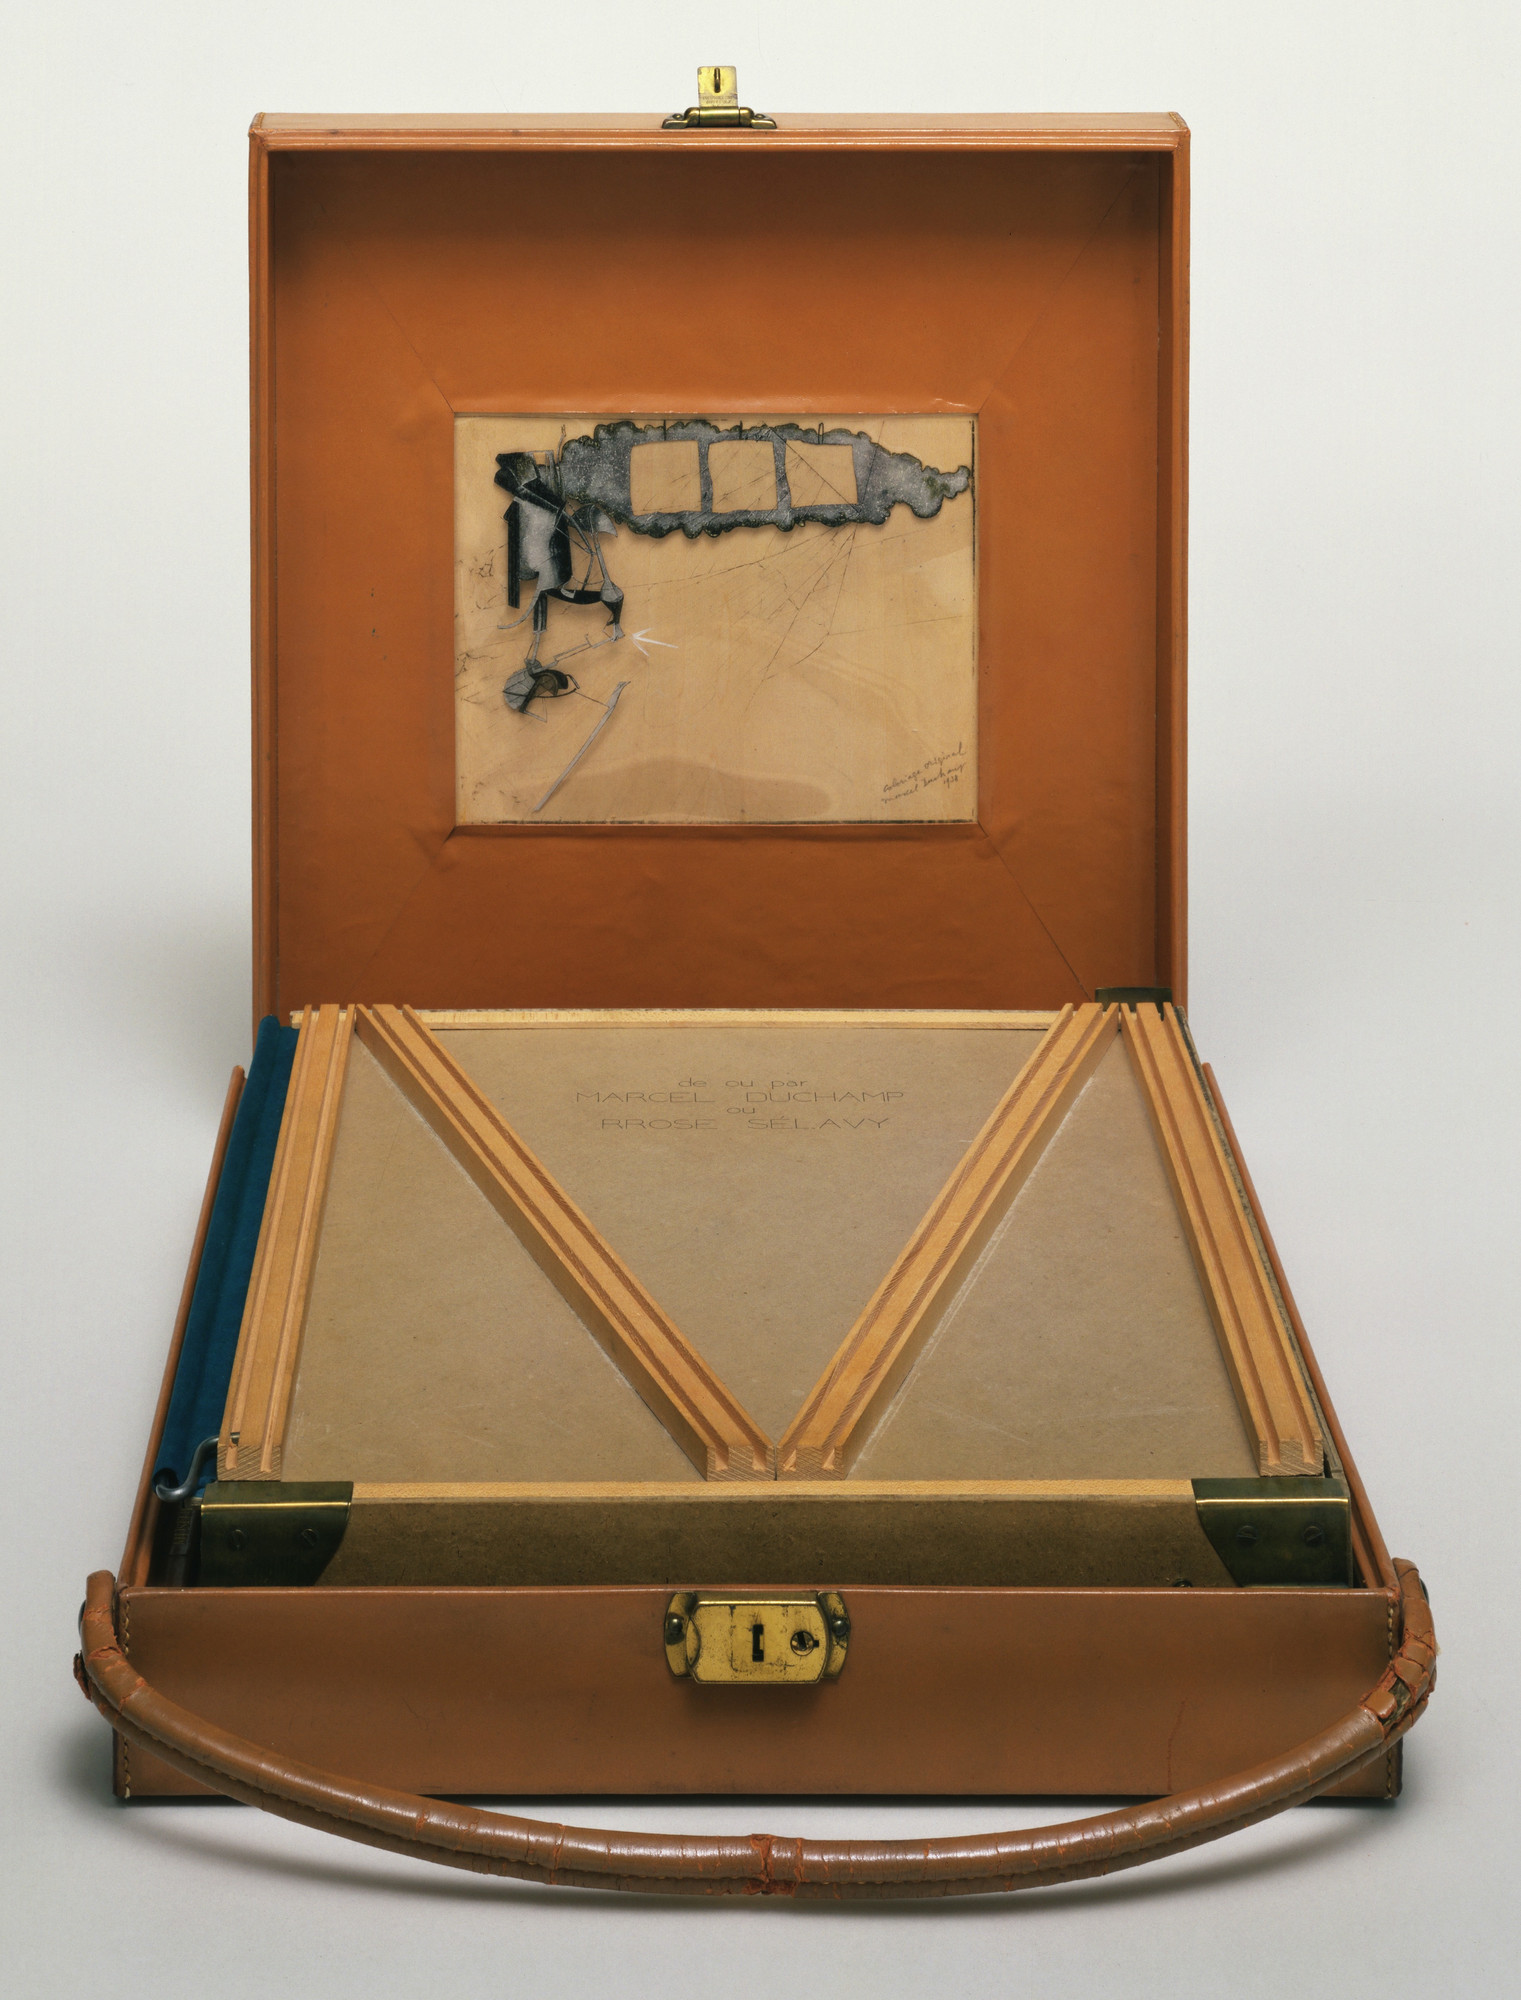 Marcel Duchamp. Box in a Valise (From or by Marcel Duchamp or Rrose Sélavy). 1935-41